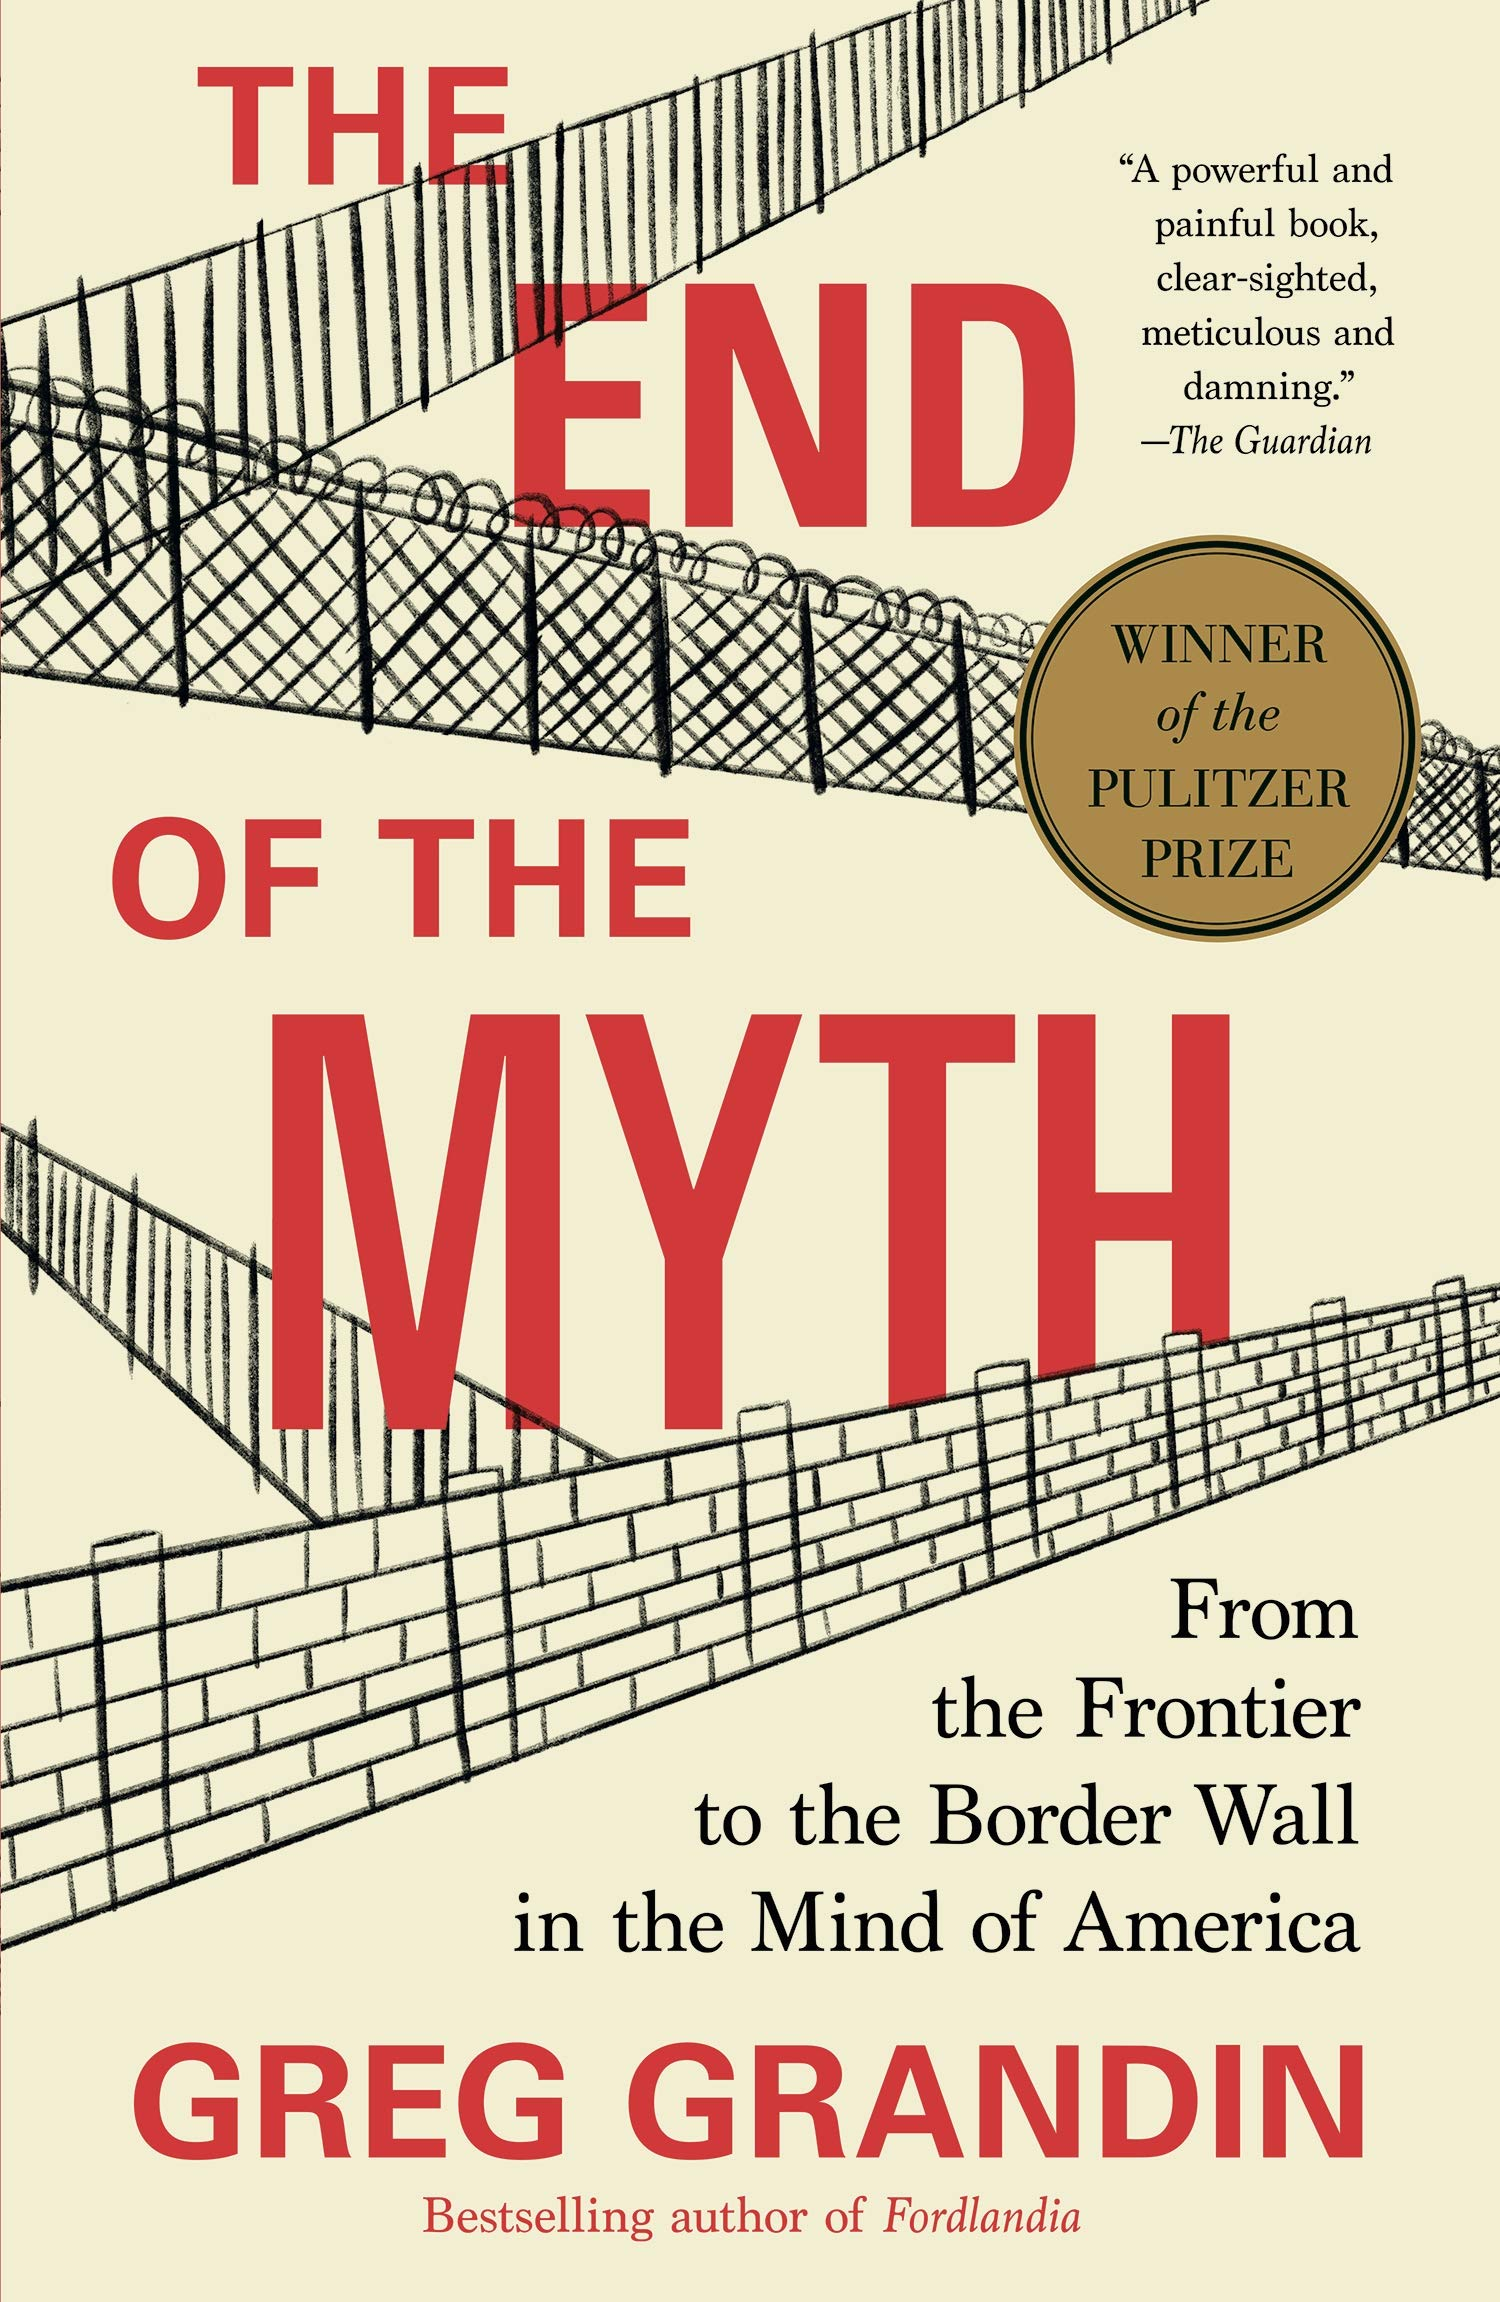 Cover of The End of the Myth: From the Frontier to the Border Wall in the Mind of America by Greg Grandin